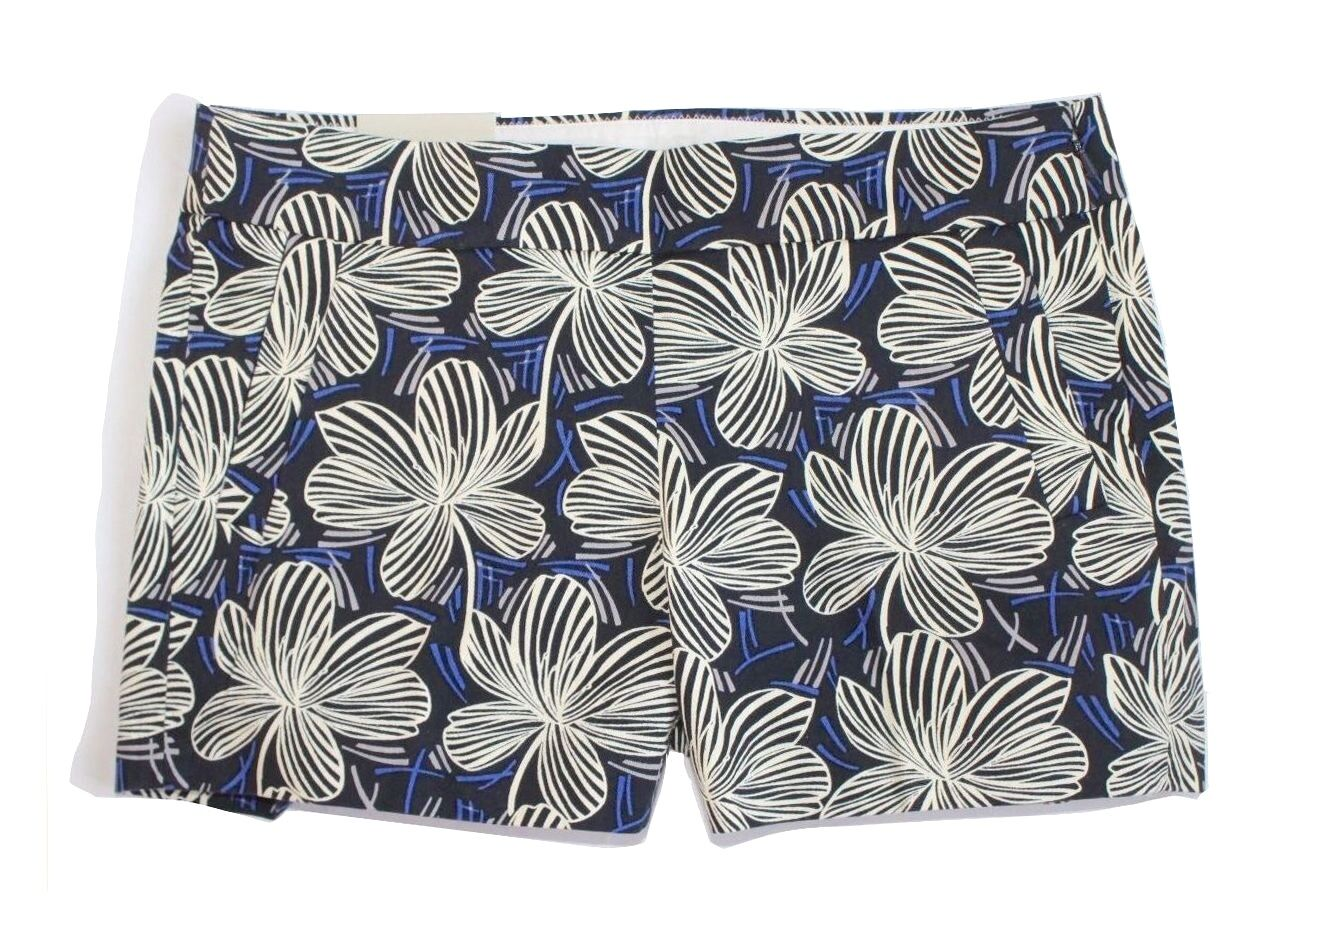 J Crew Factory - Women's 2 (XS) - NWT - bluee Hibiscus Floral Print Cotton Shorts